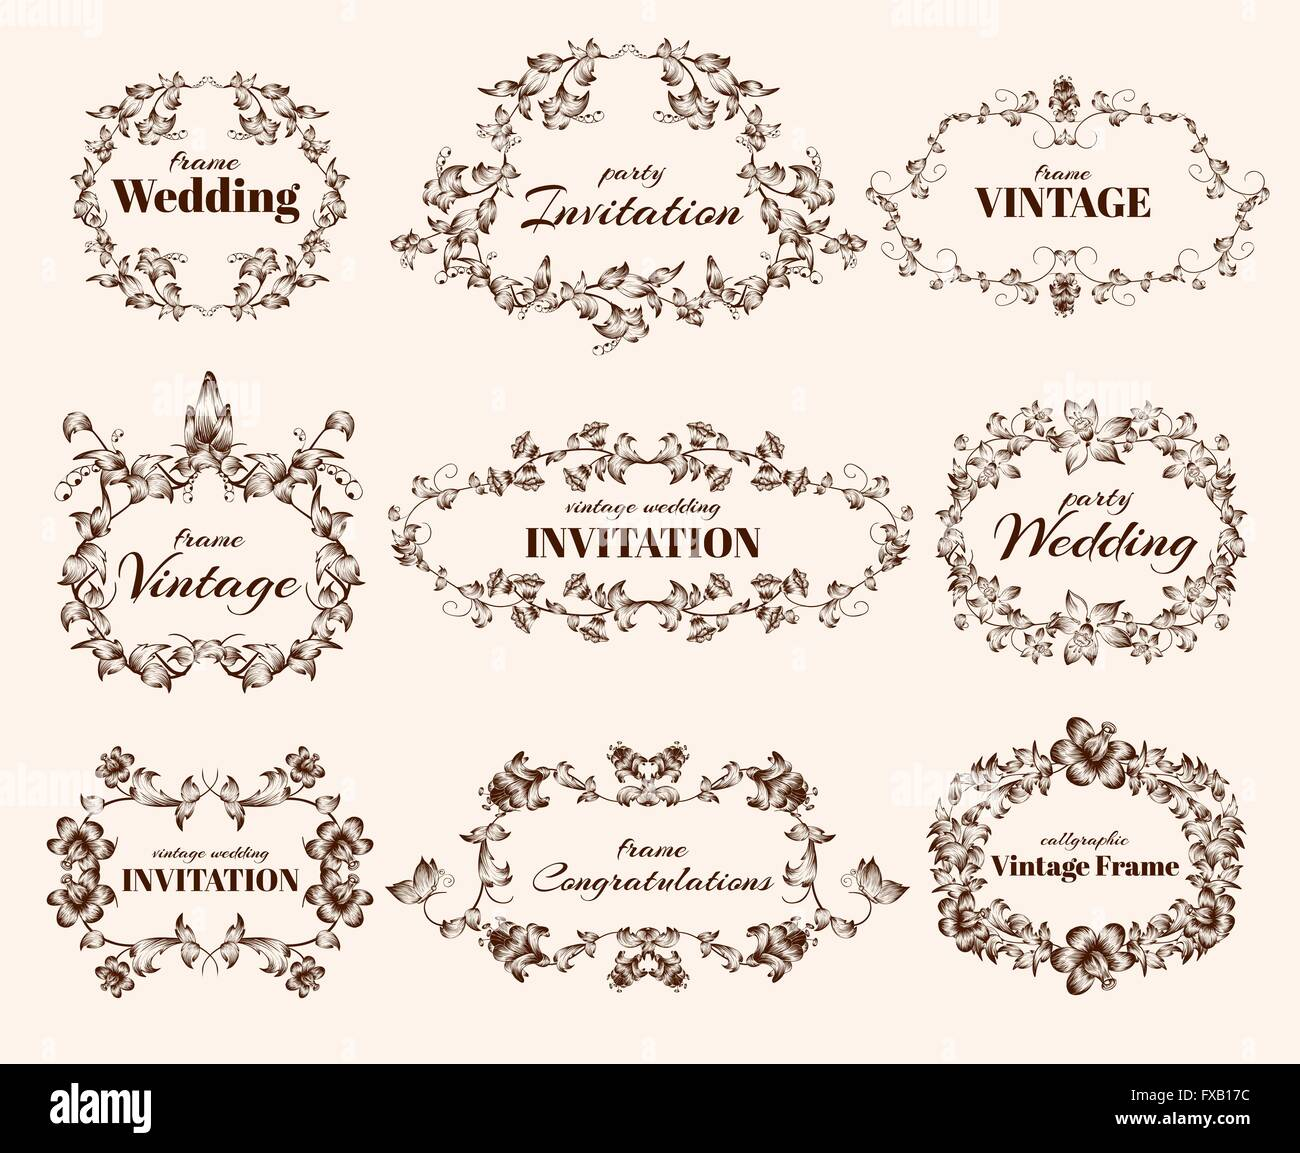 Vintage calligraphic frames - Stock Image